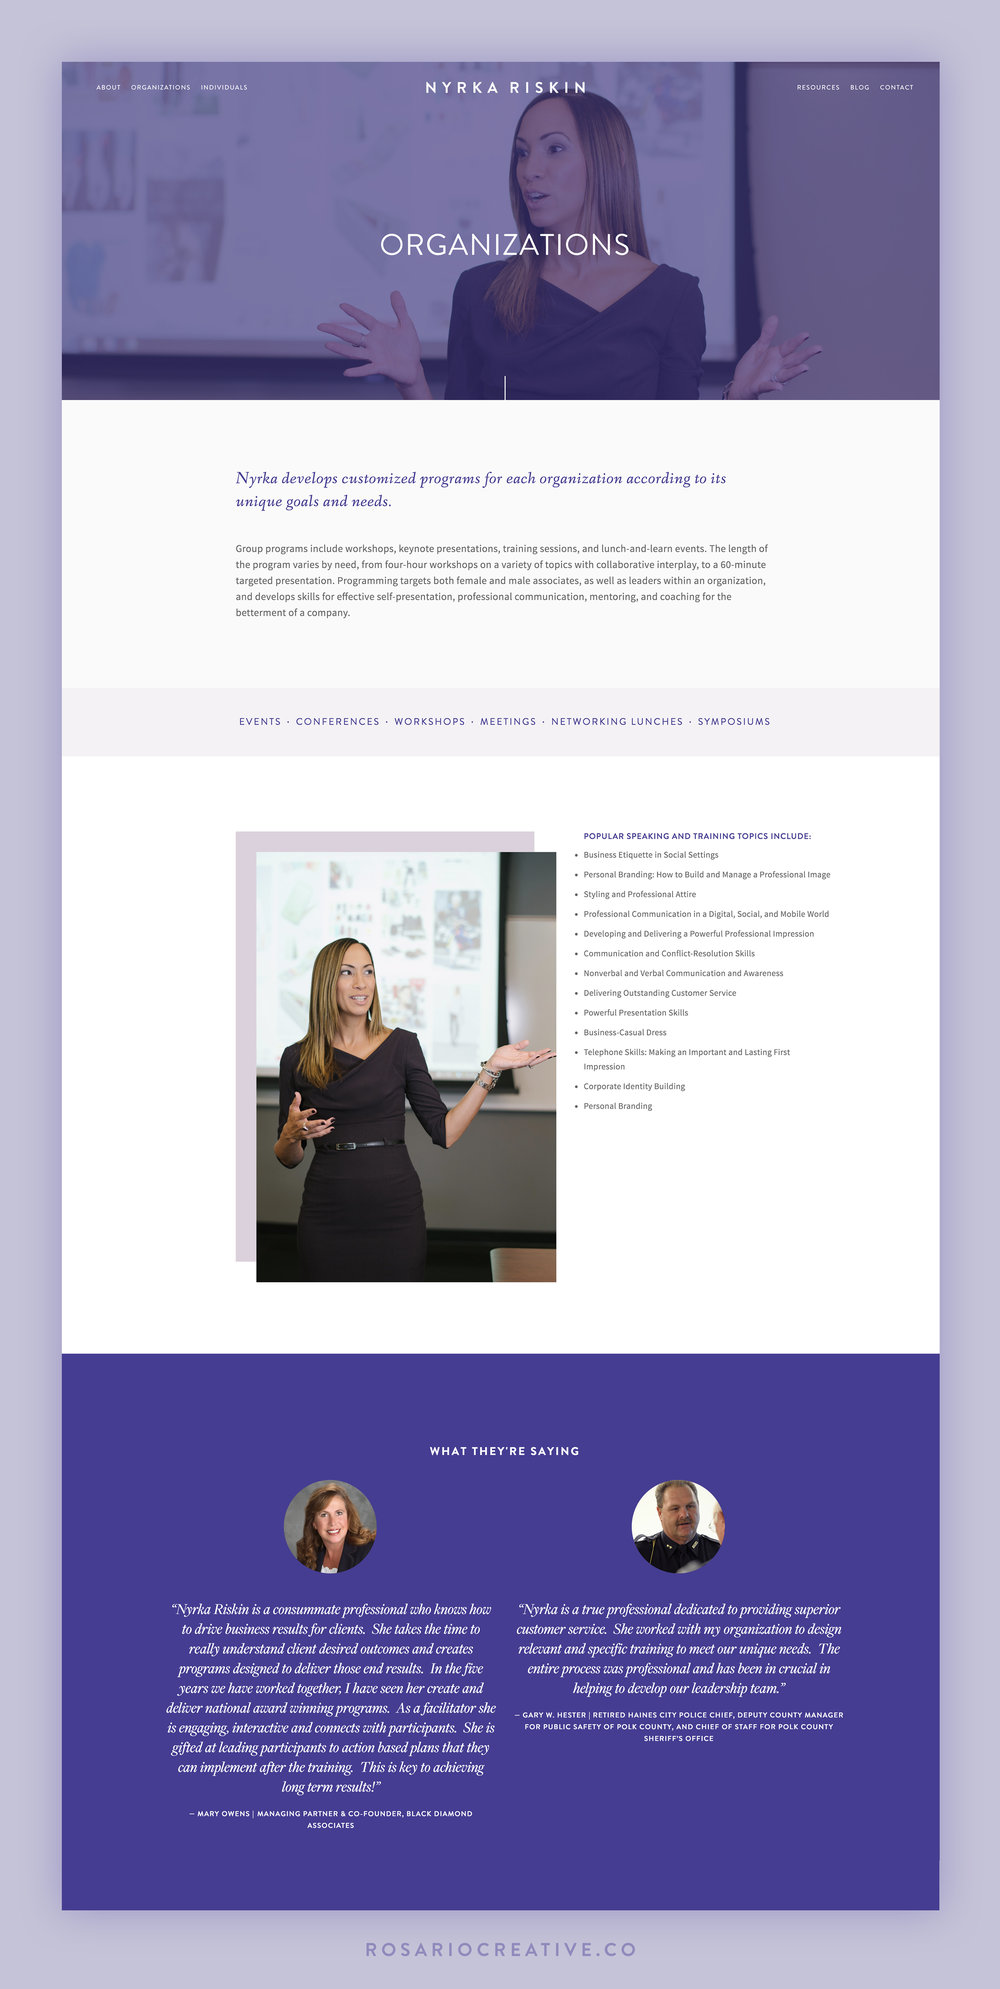 Nyrka Riskin Squarespace Website Organizations Page